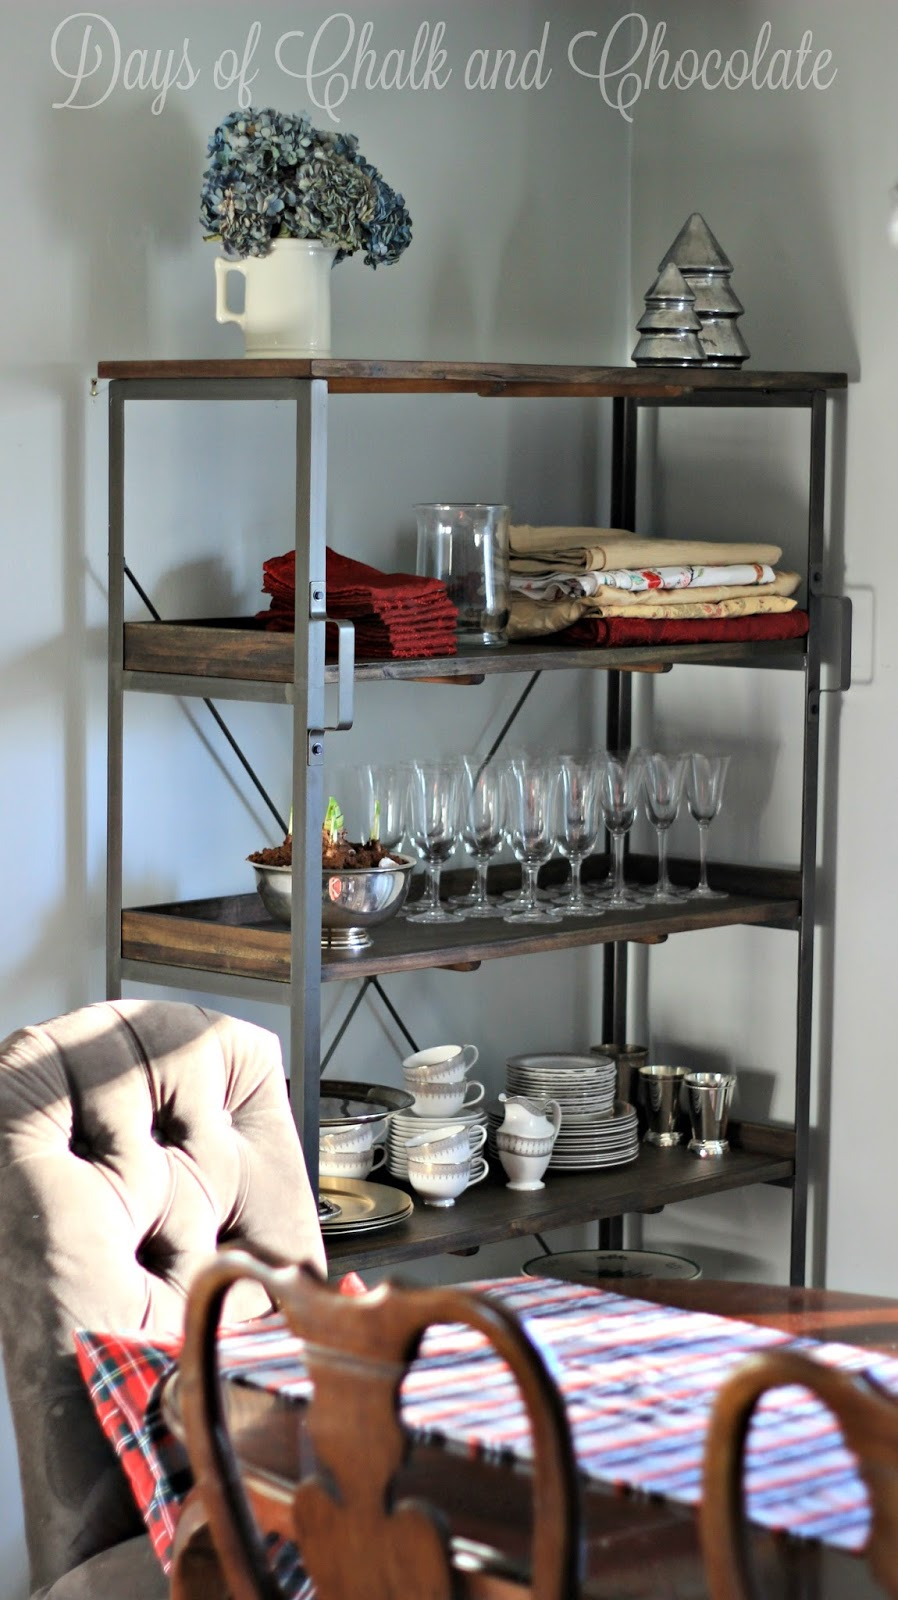 Dining room update gift ideas days of chalk and chocolate for Dining room update ideas